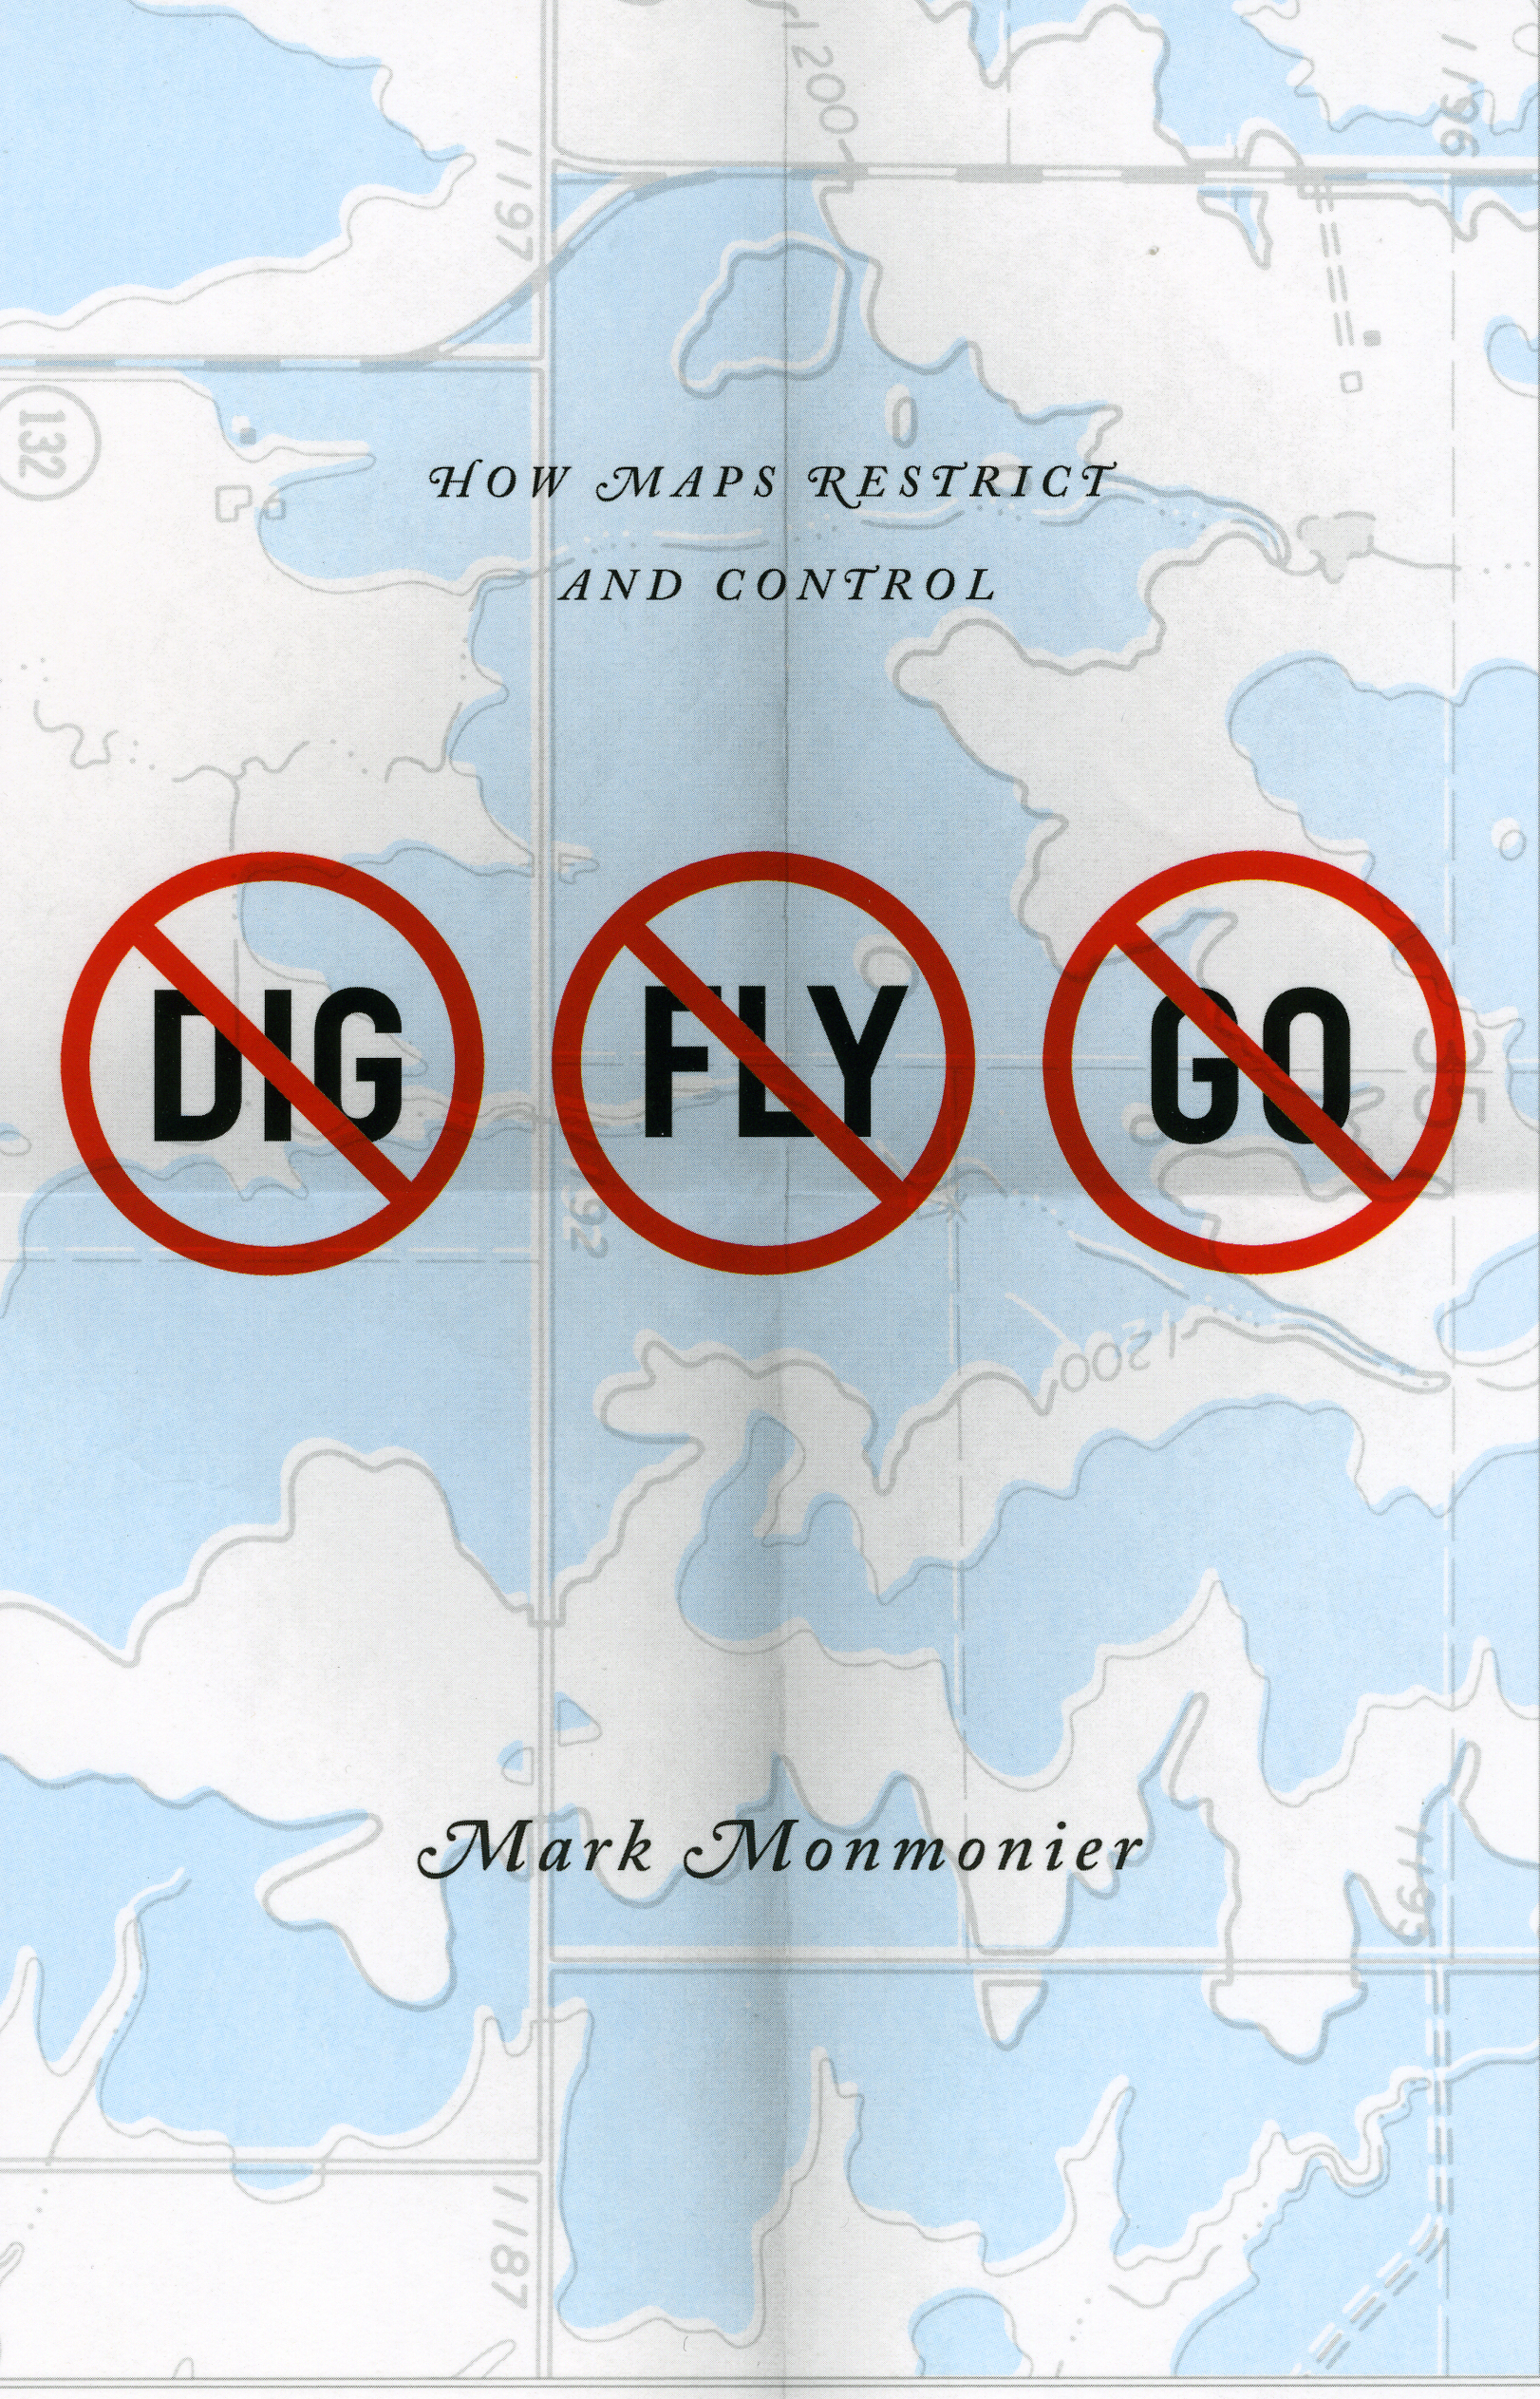 Vyonon no dig no fly no go how maps restrict and control mark monmonier fandeluxe Images